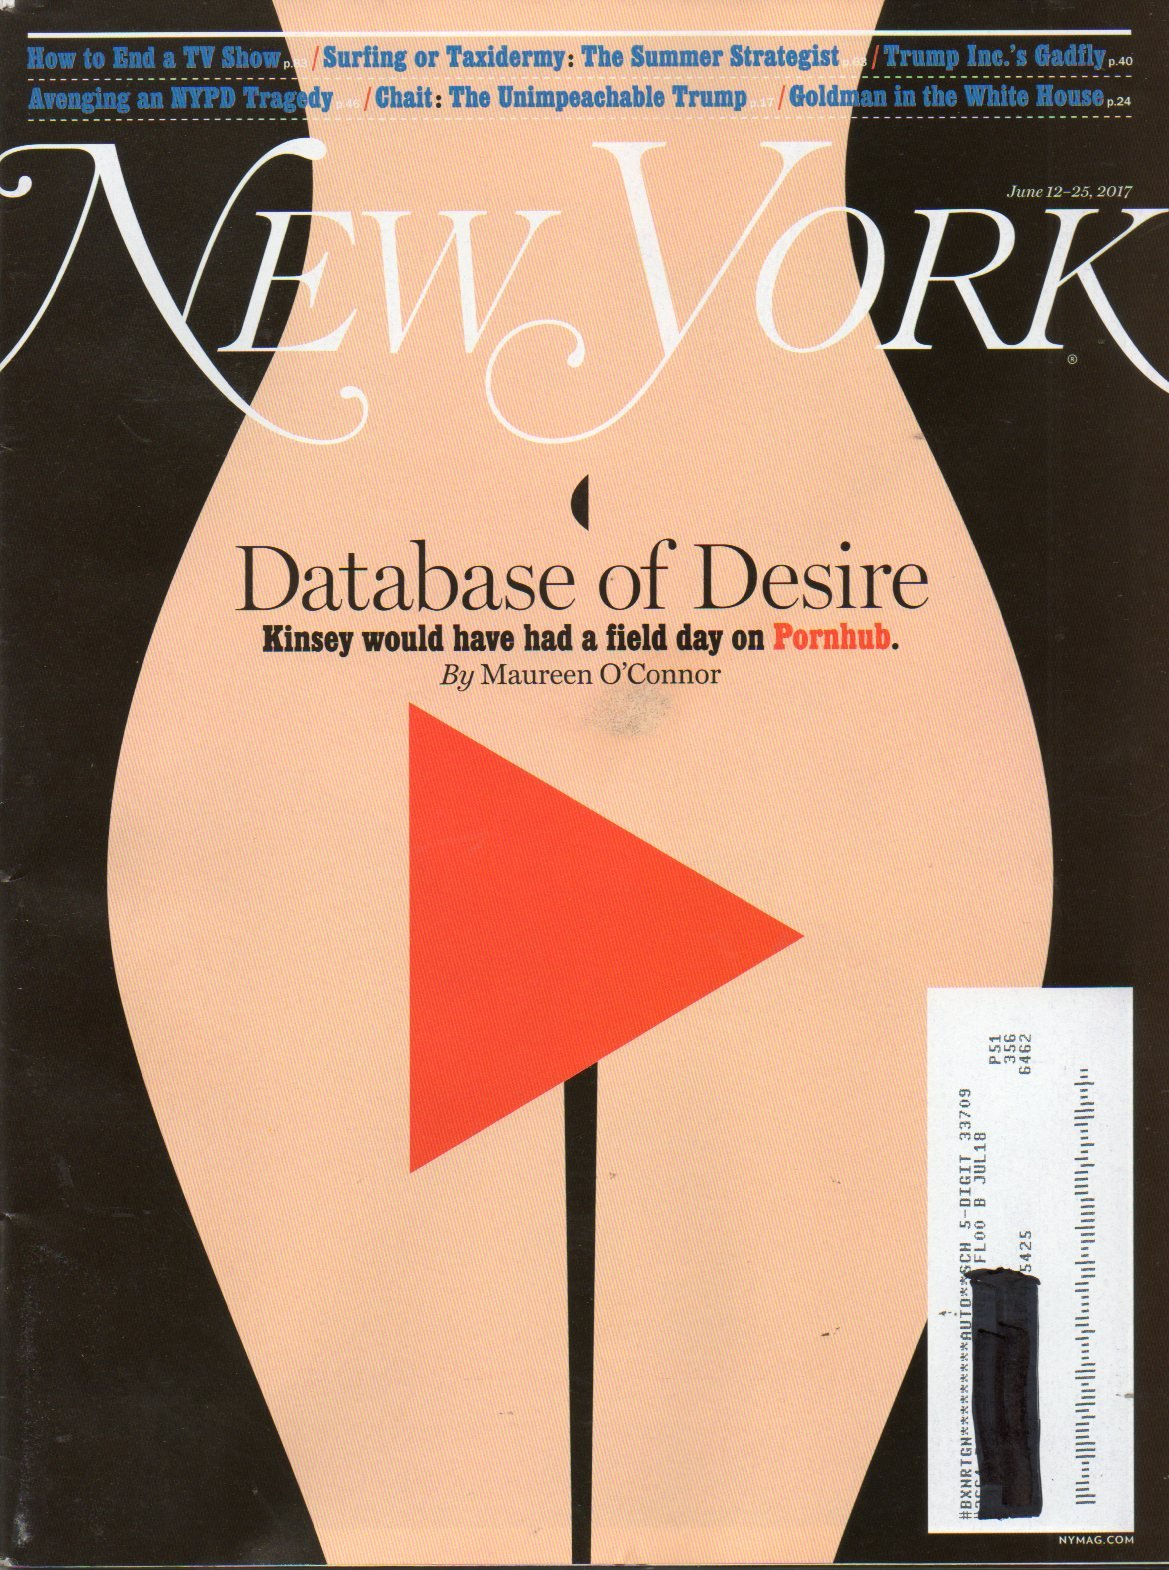 New York Magazine Name Label Darkened Out THE UNIMPEACHABLE